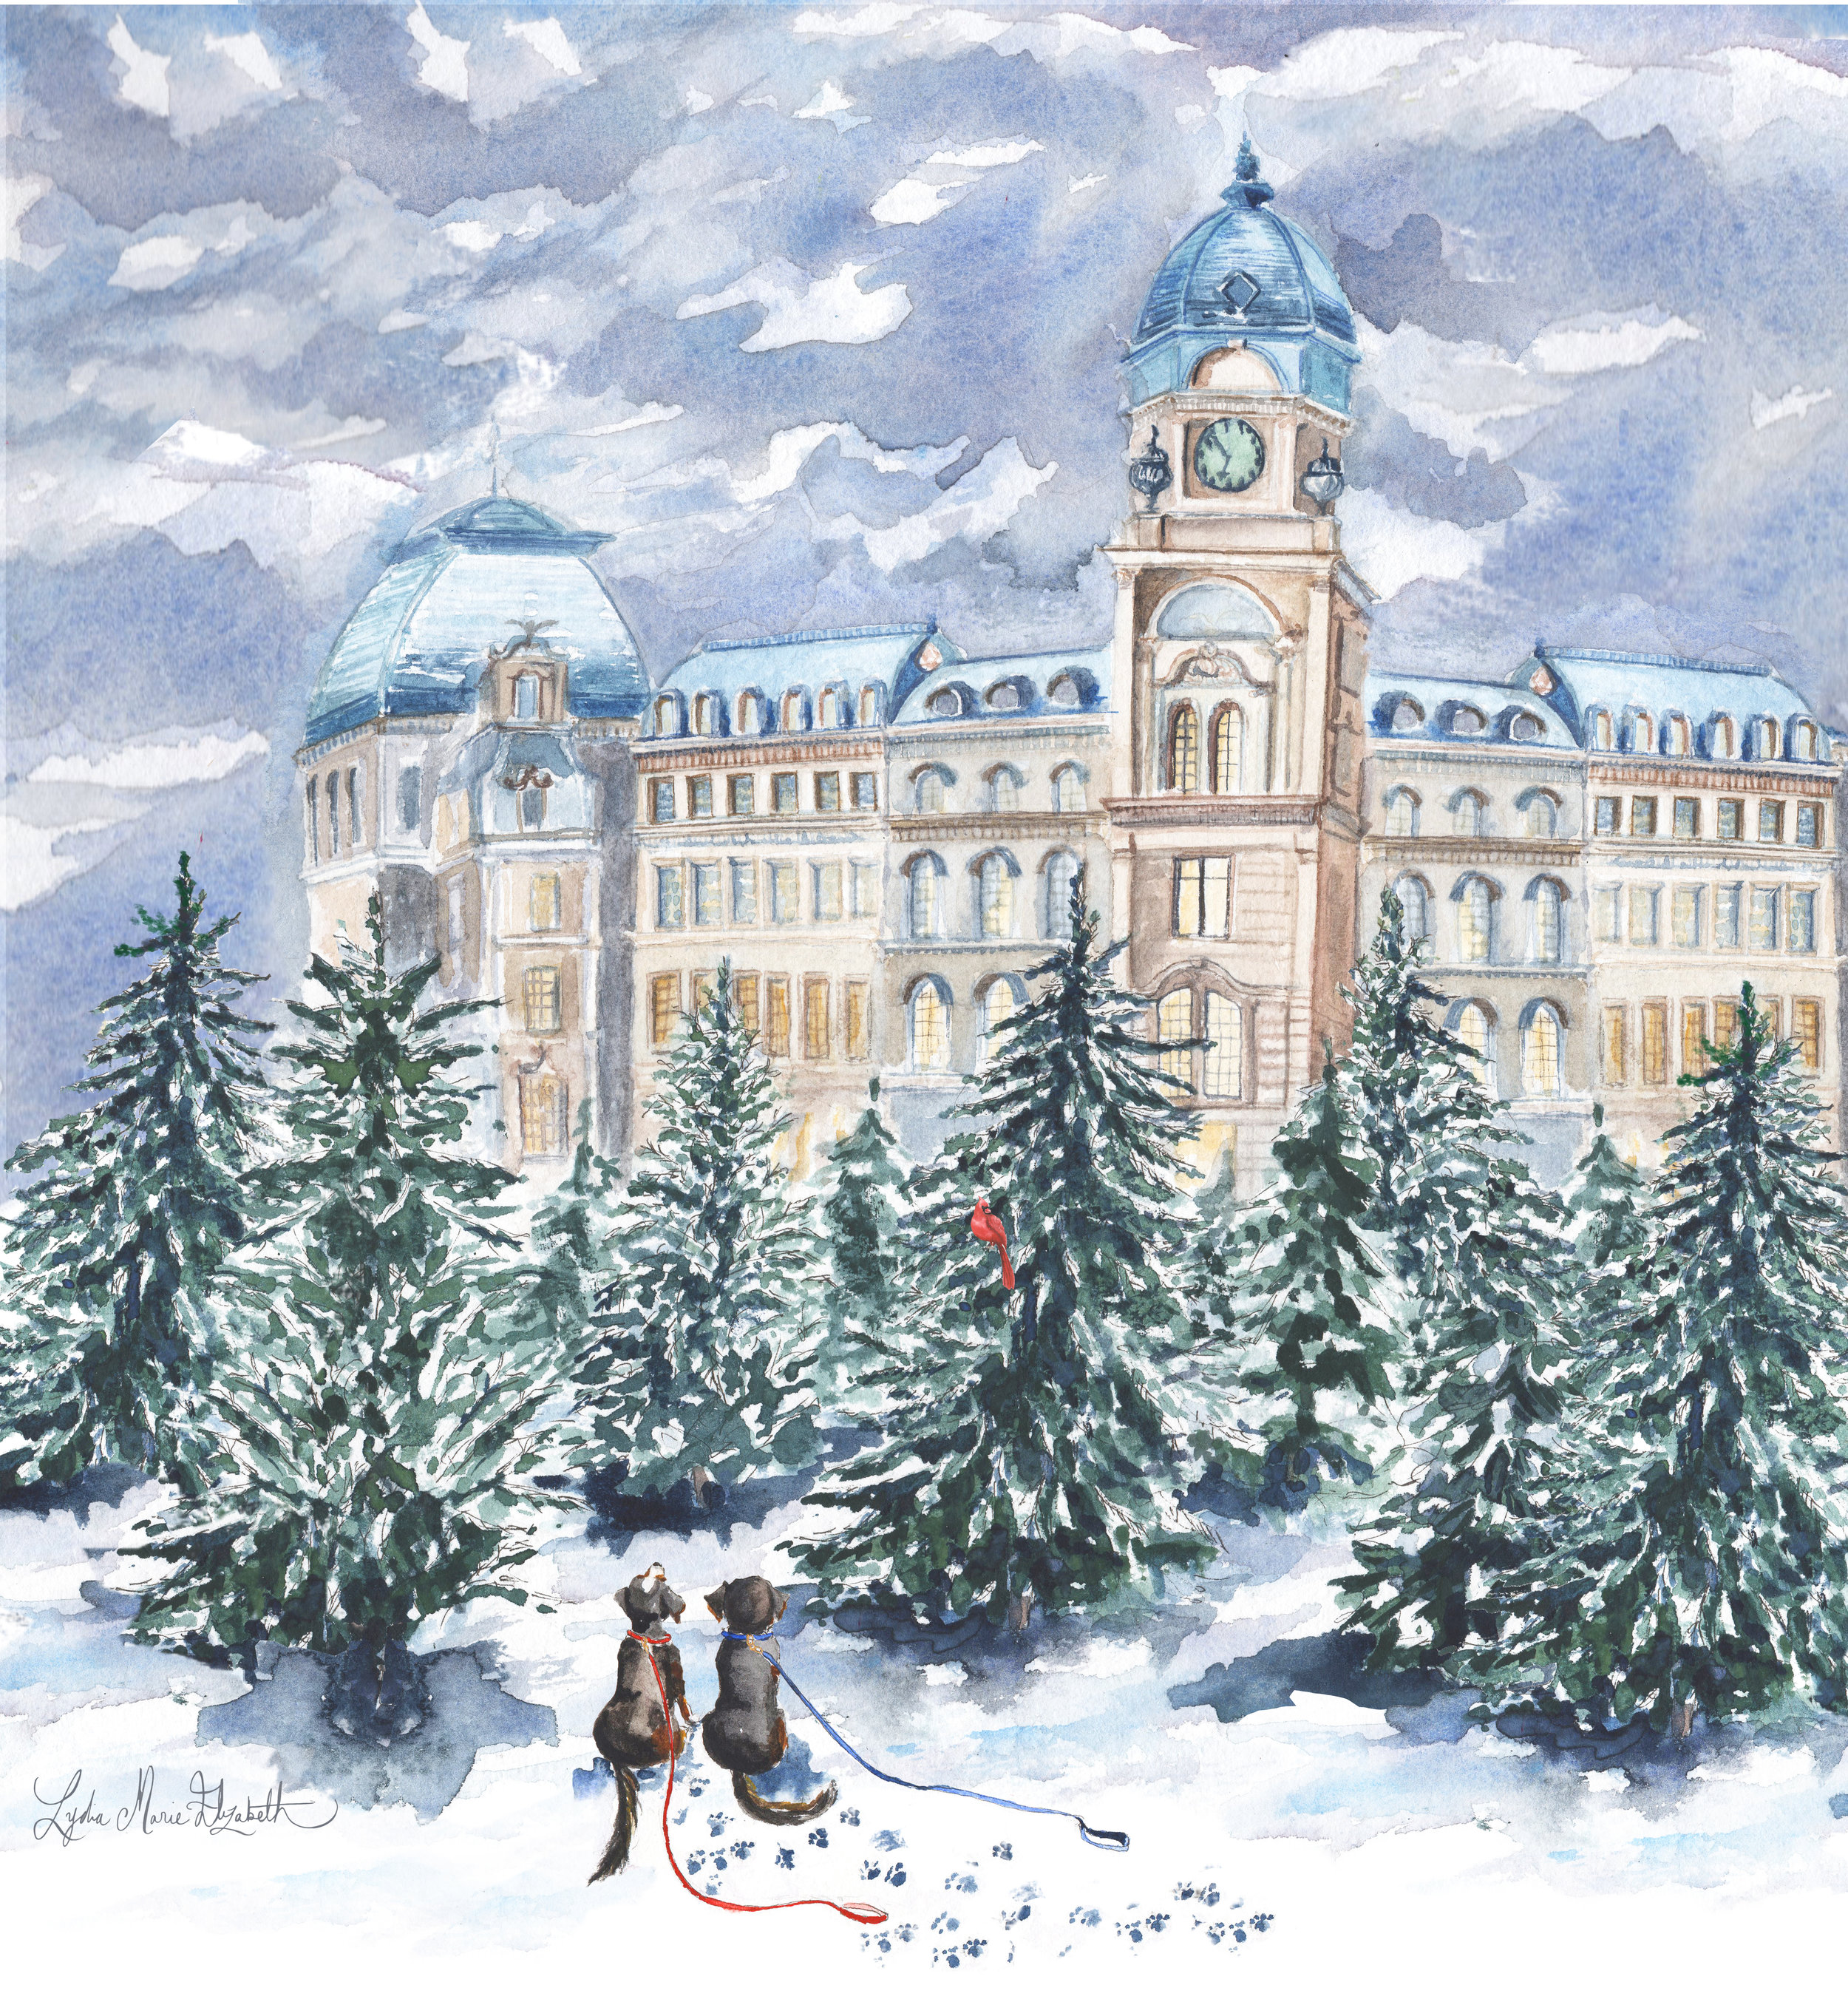 Lydia Marie Elizabeth Christmas Tree Market in Vienna 2018 2019 special edition Around the World Calendar illustrated in watercolor puppies chase cardinal